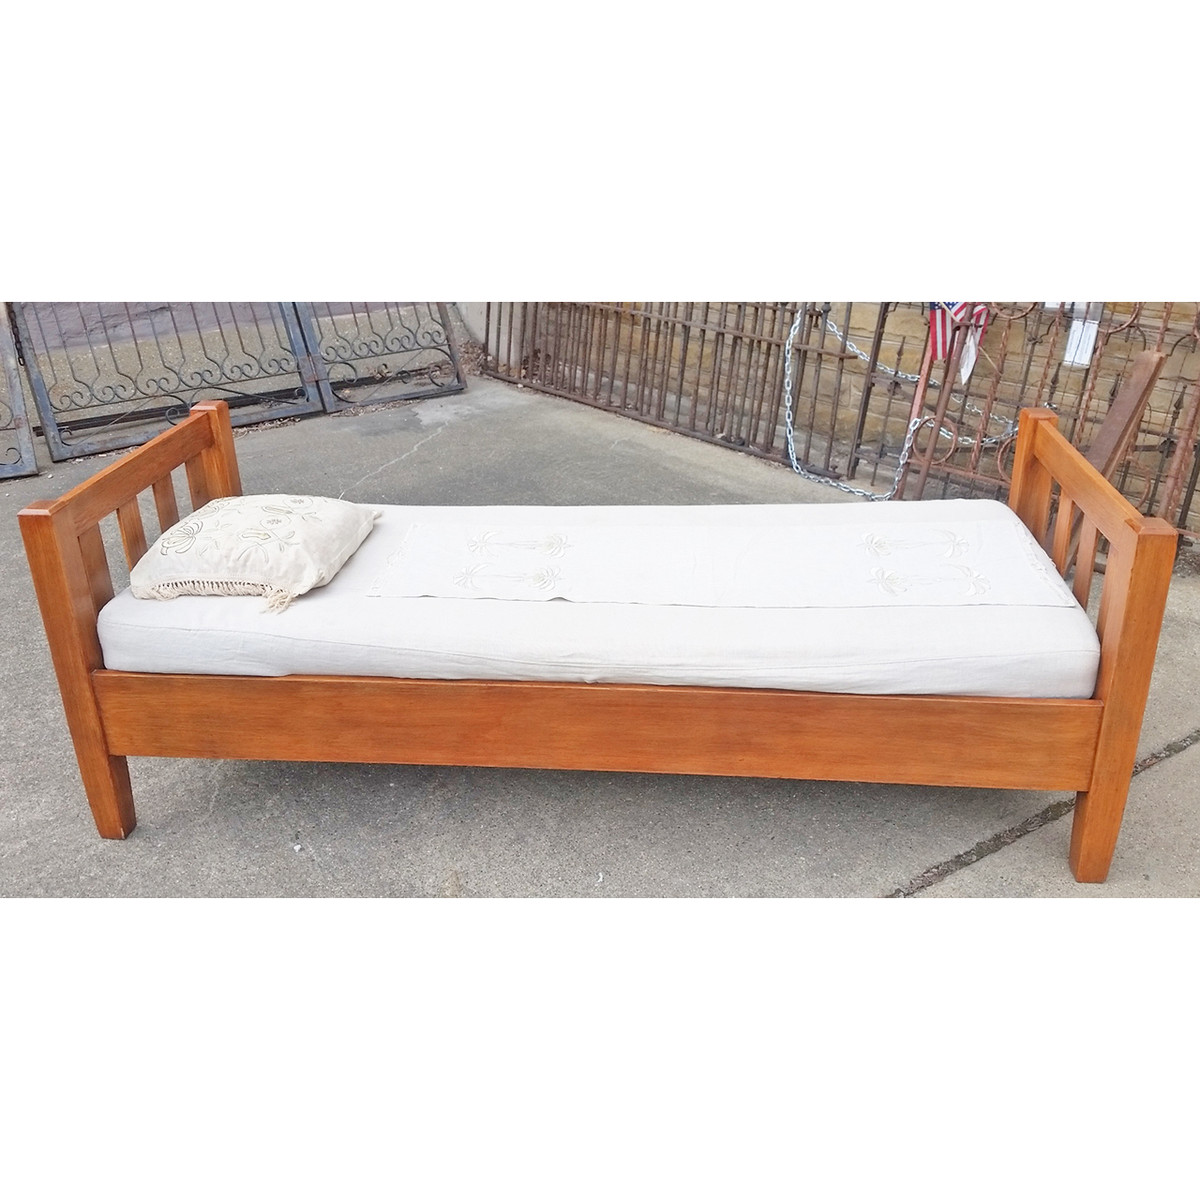 F19030 - Antique Arts and Crafts Oak Daybed